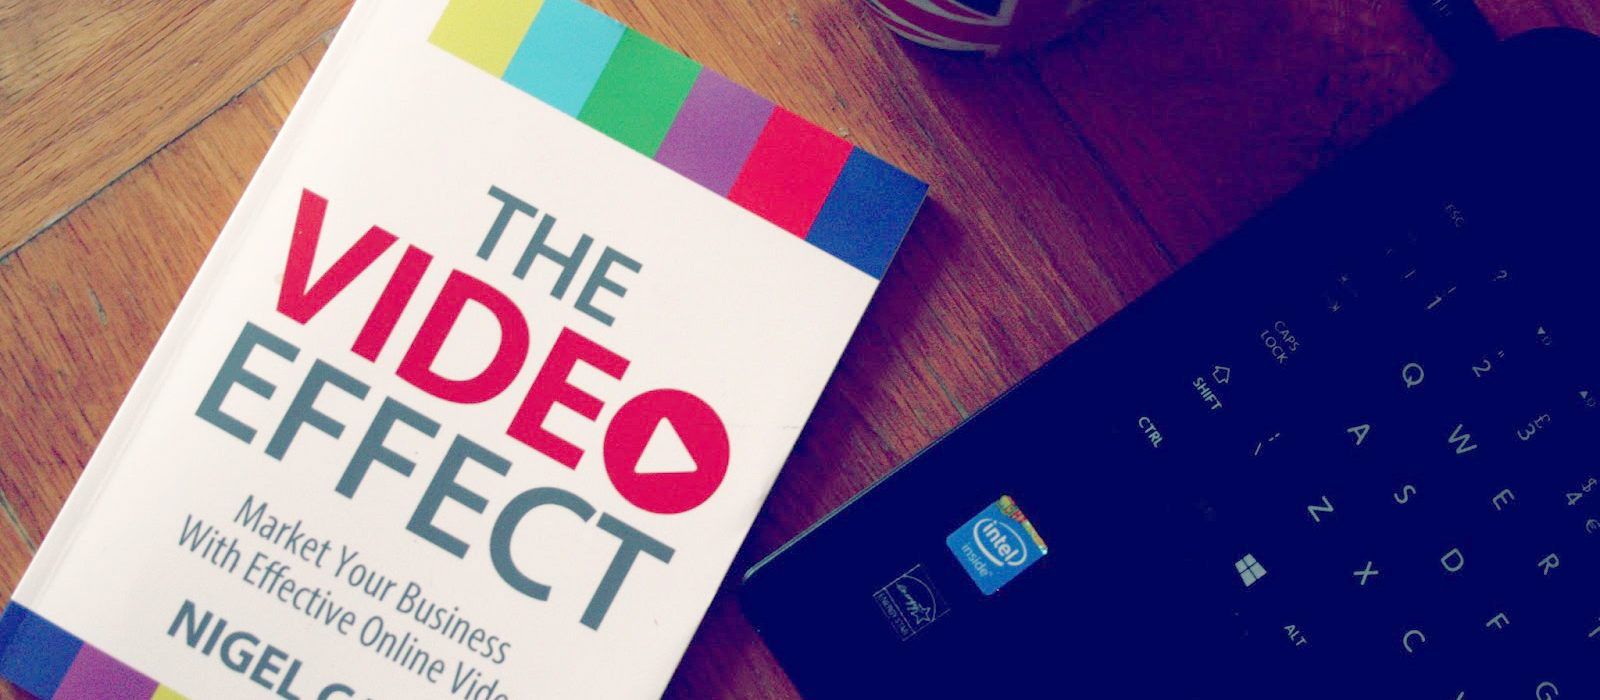 Nigel Camp the video effect market your brand business with effective online video